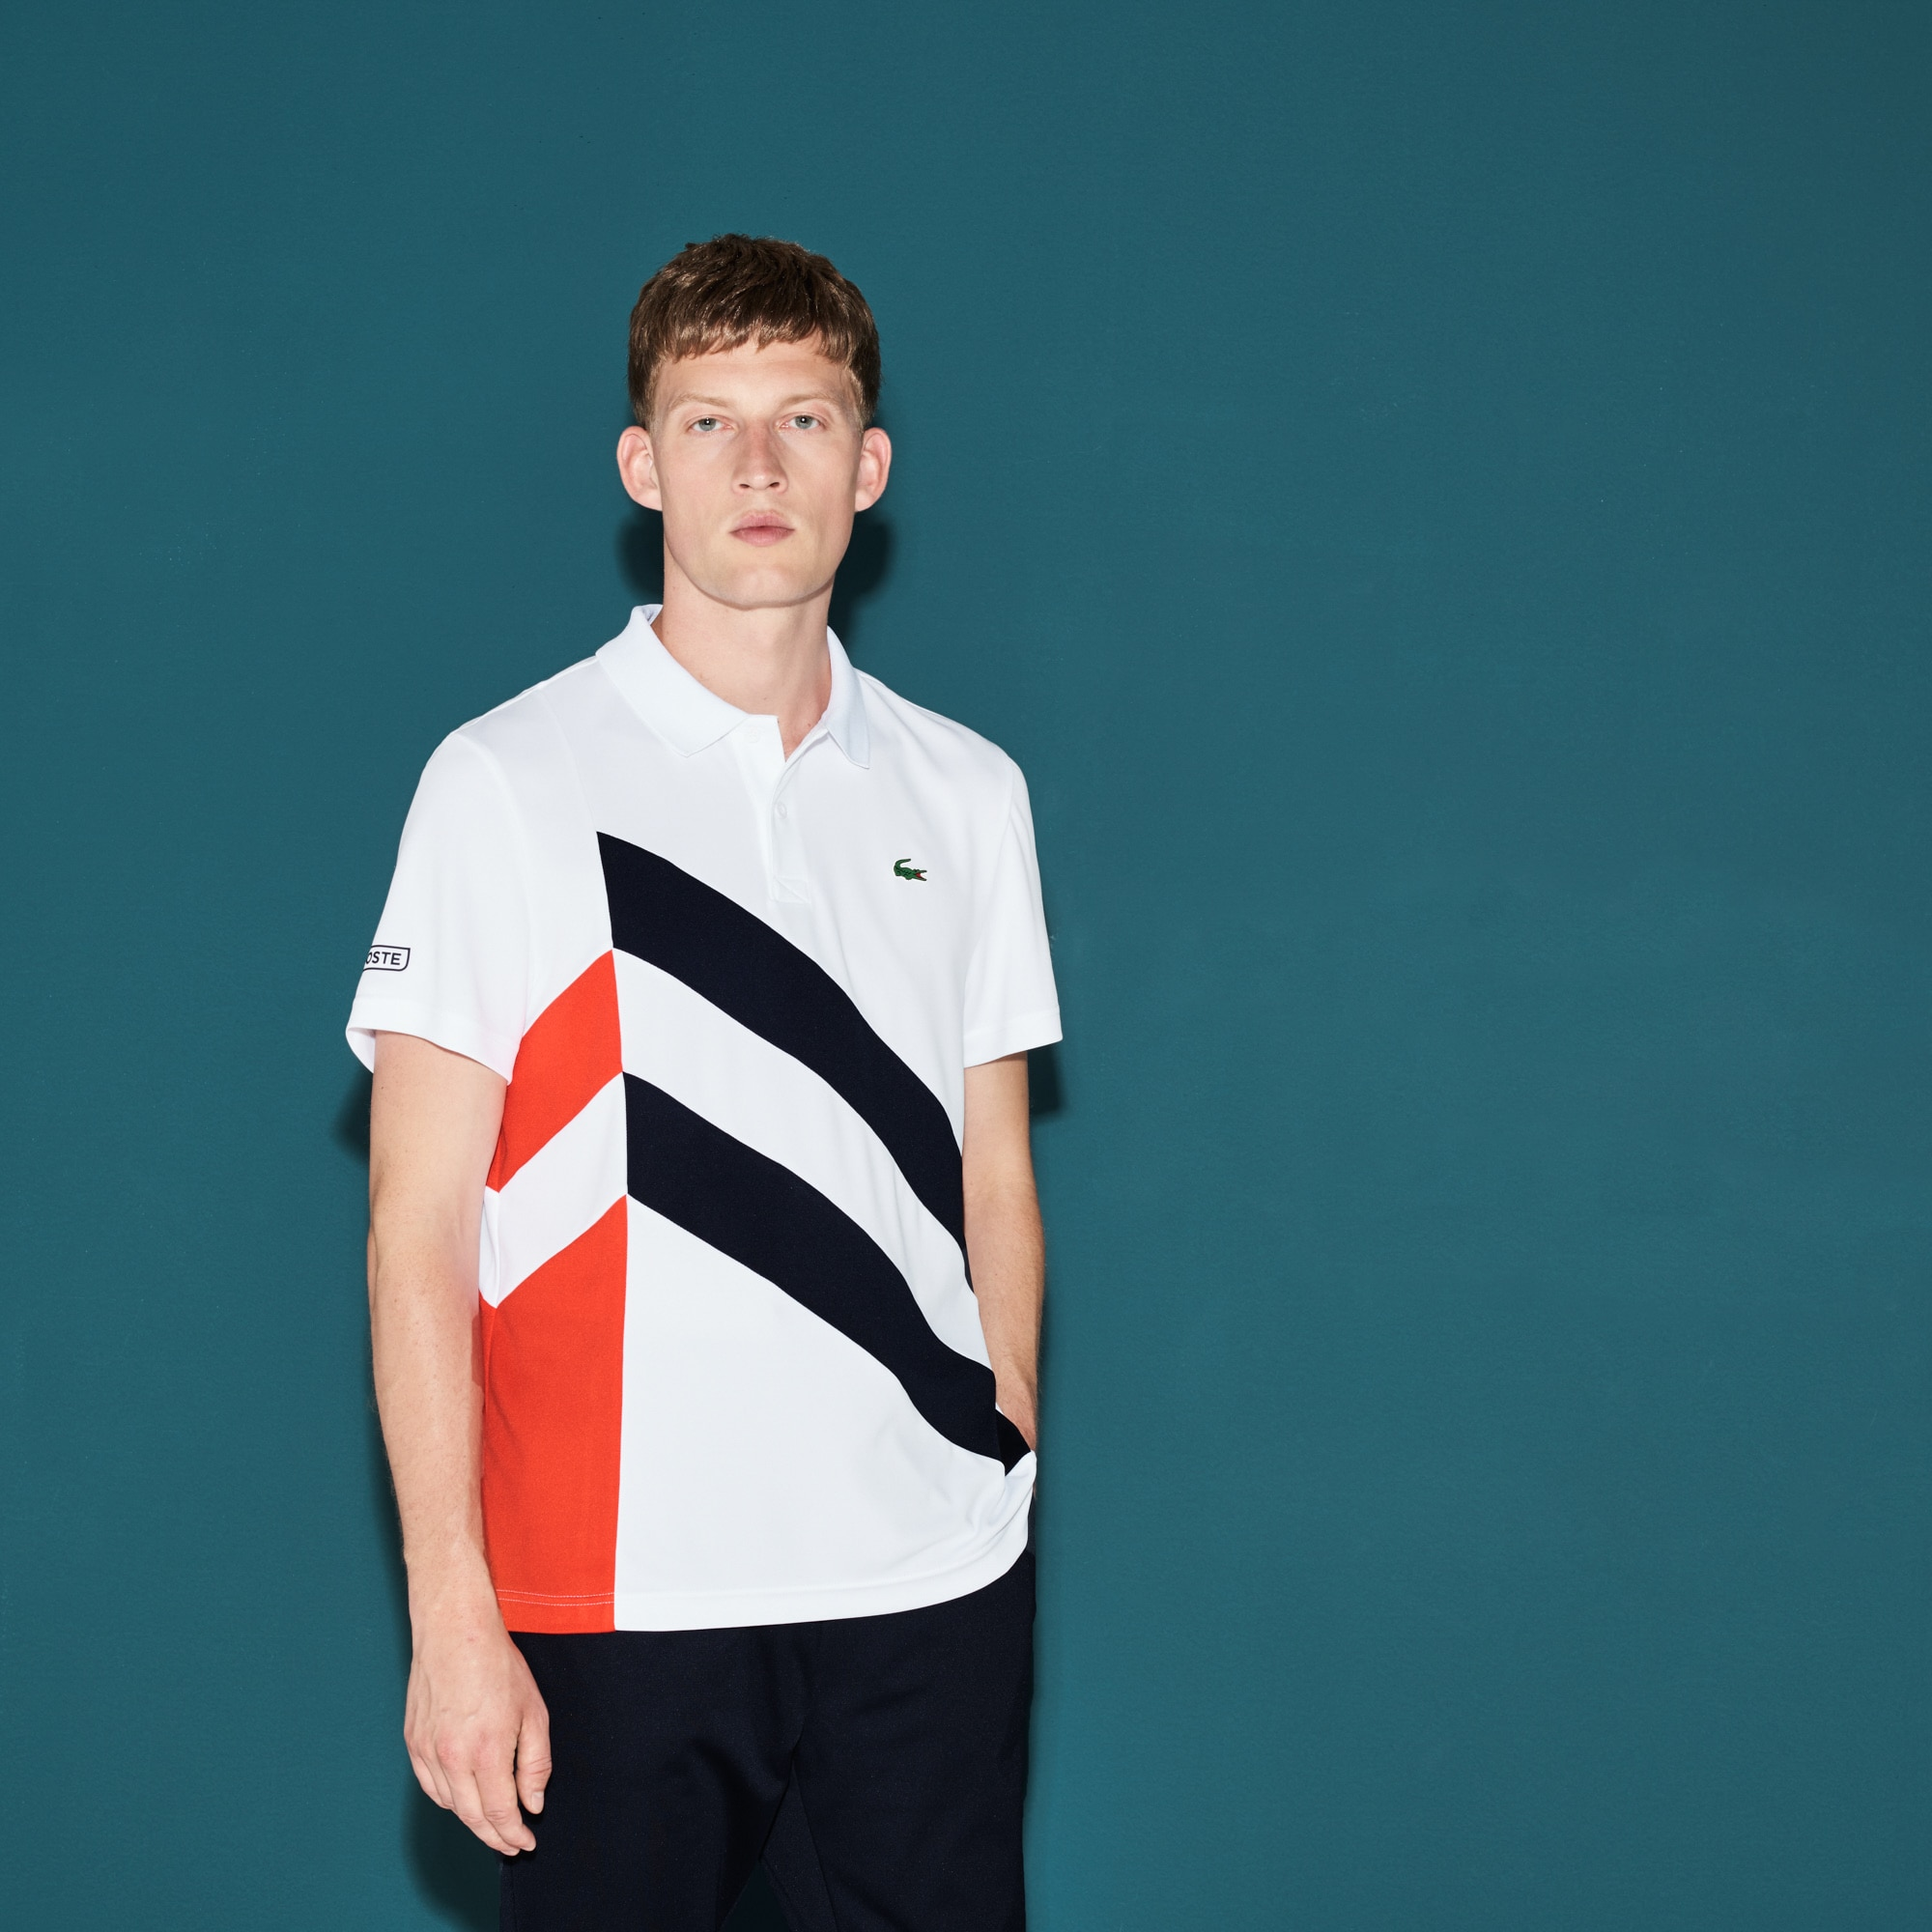 Men's Lacoste SPORT Tennis Colorblock Band Tech Piqué Polo Shirt